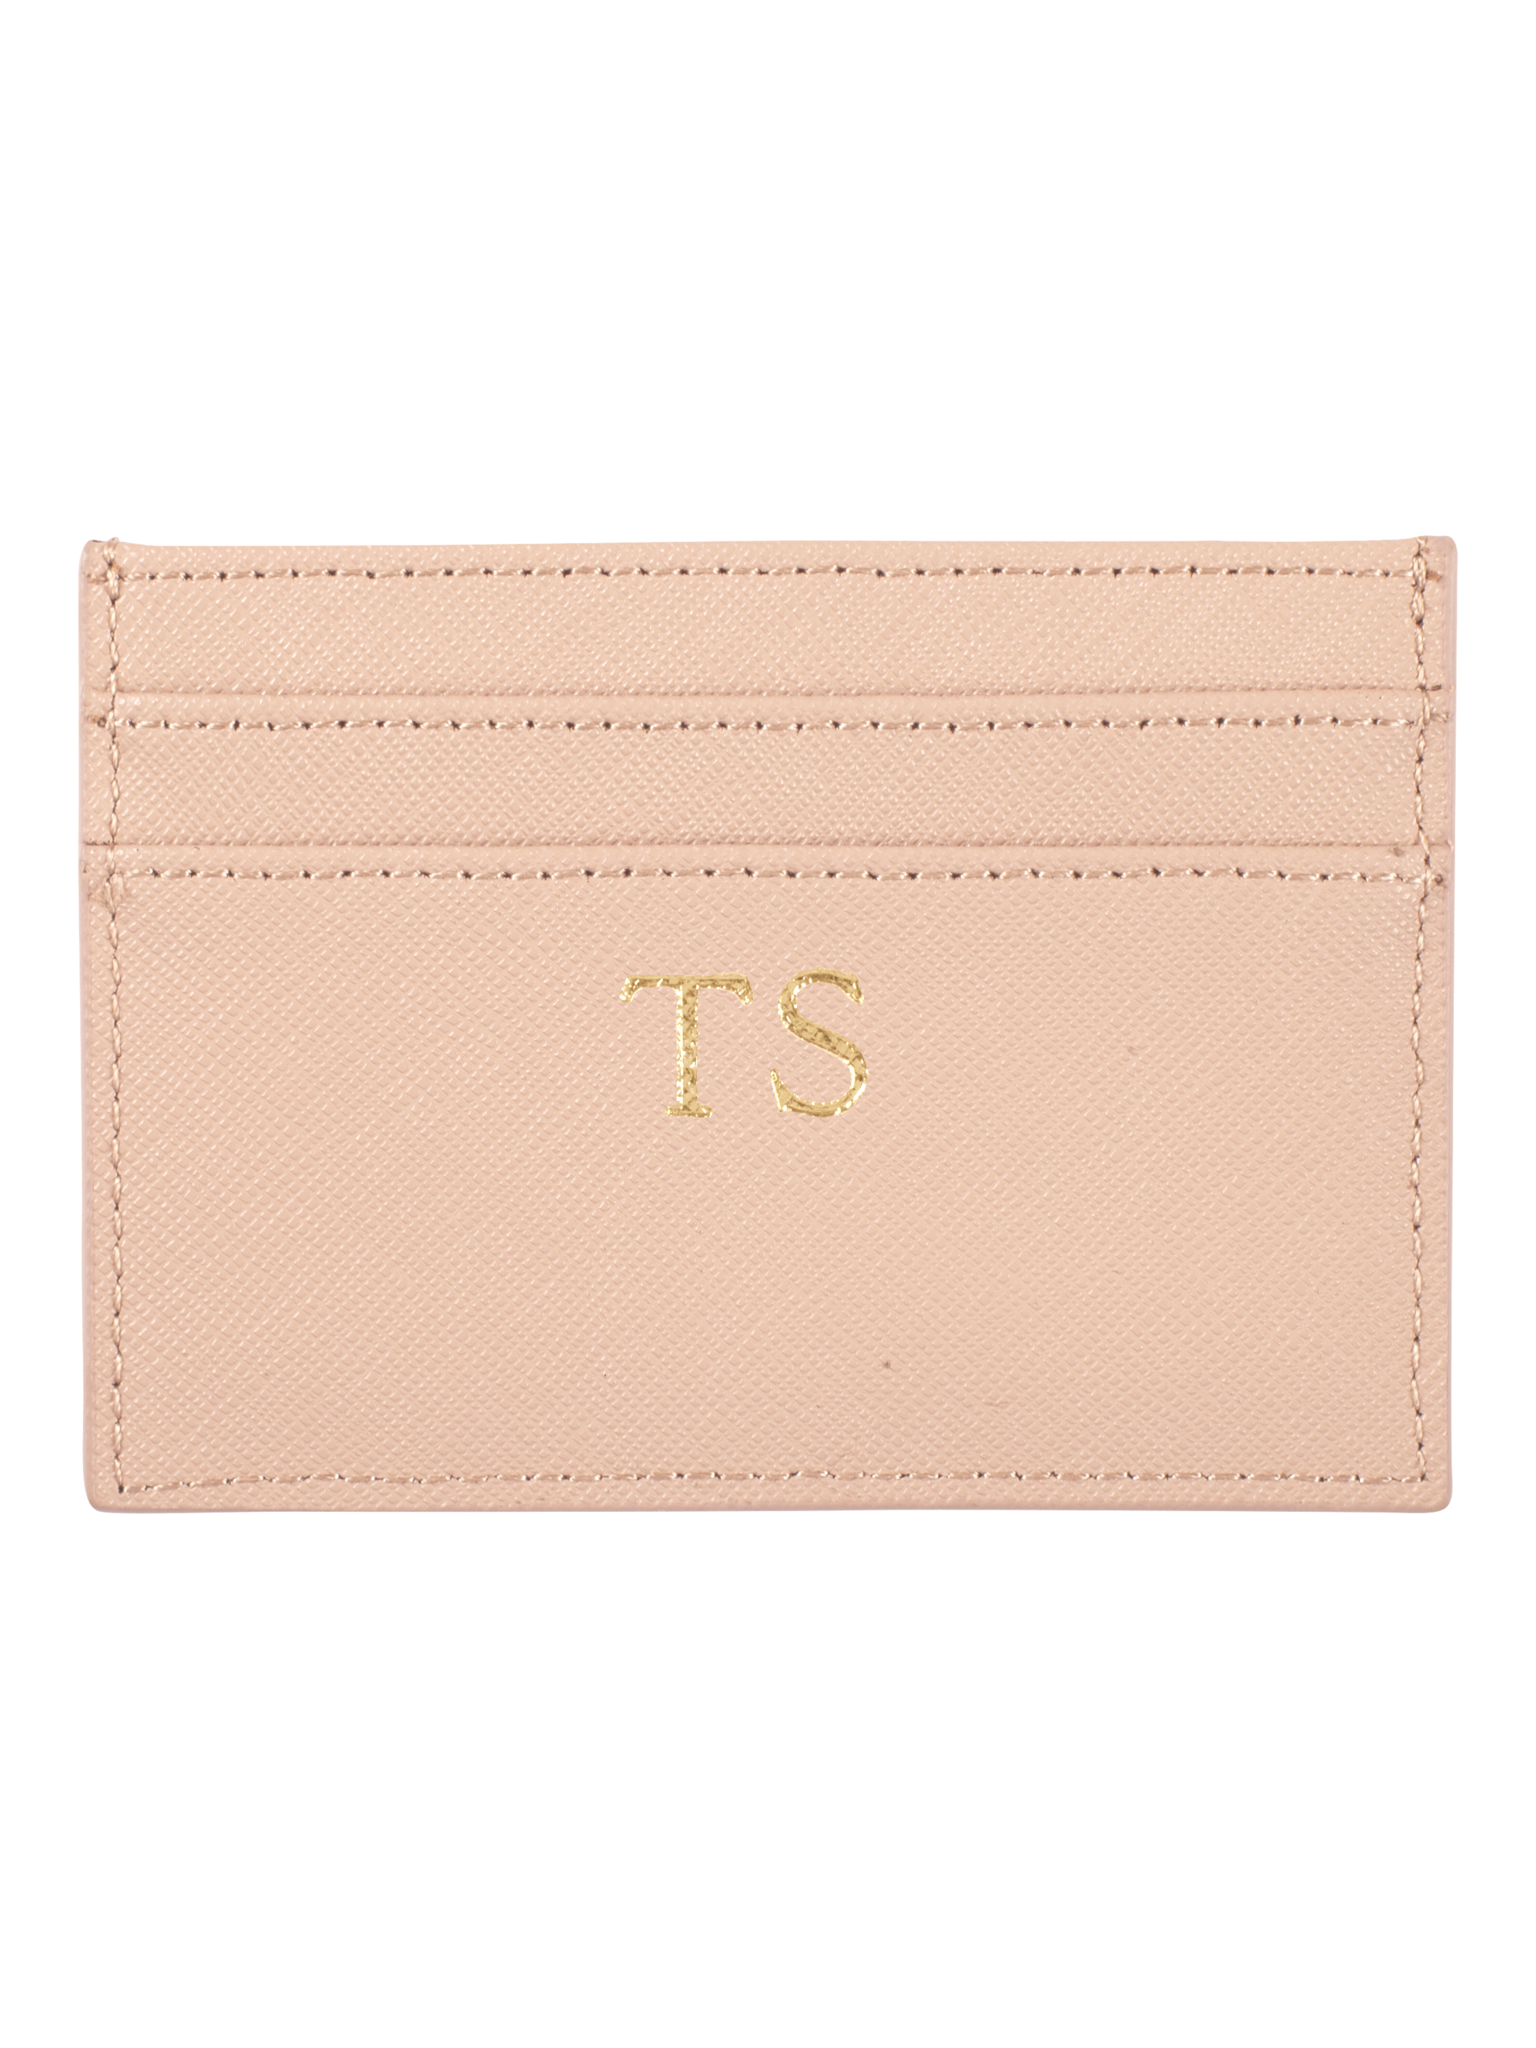 Personalized Customized Monogram Saffiano Slim Cardholder in Warm Taupe The Oak Bar Singapore